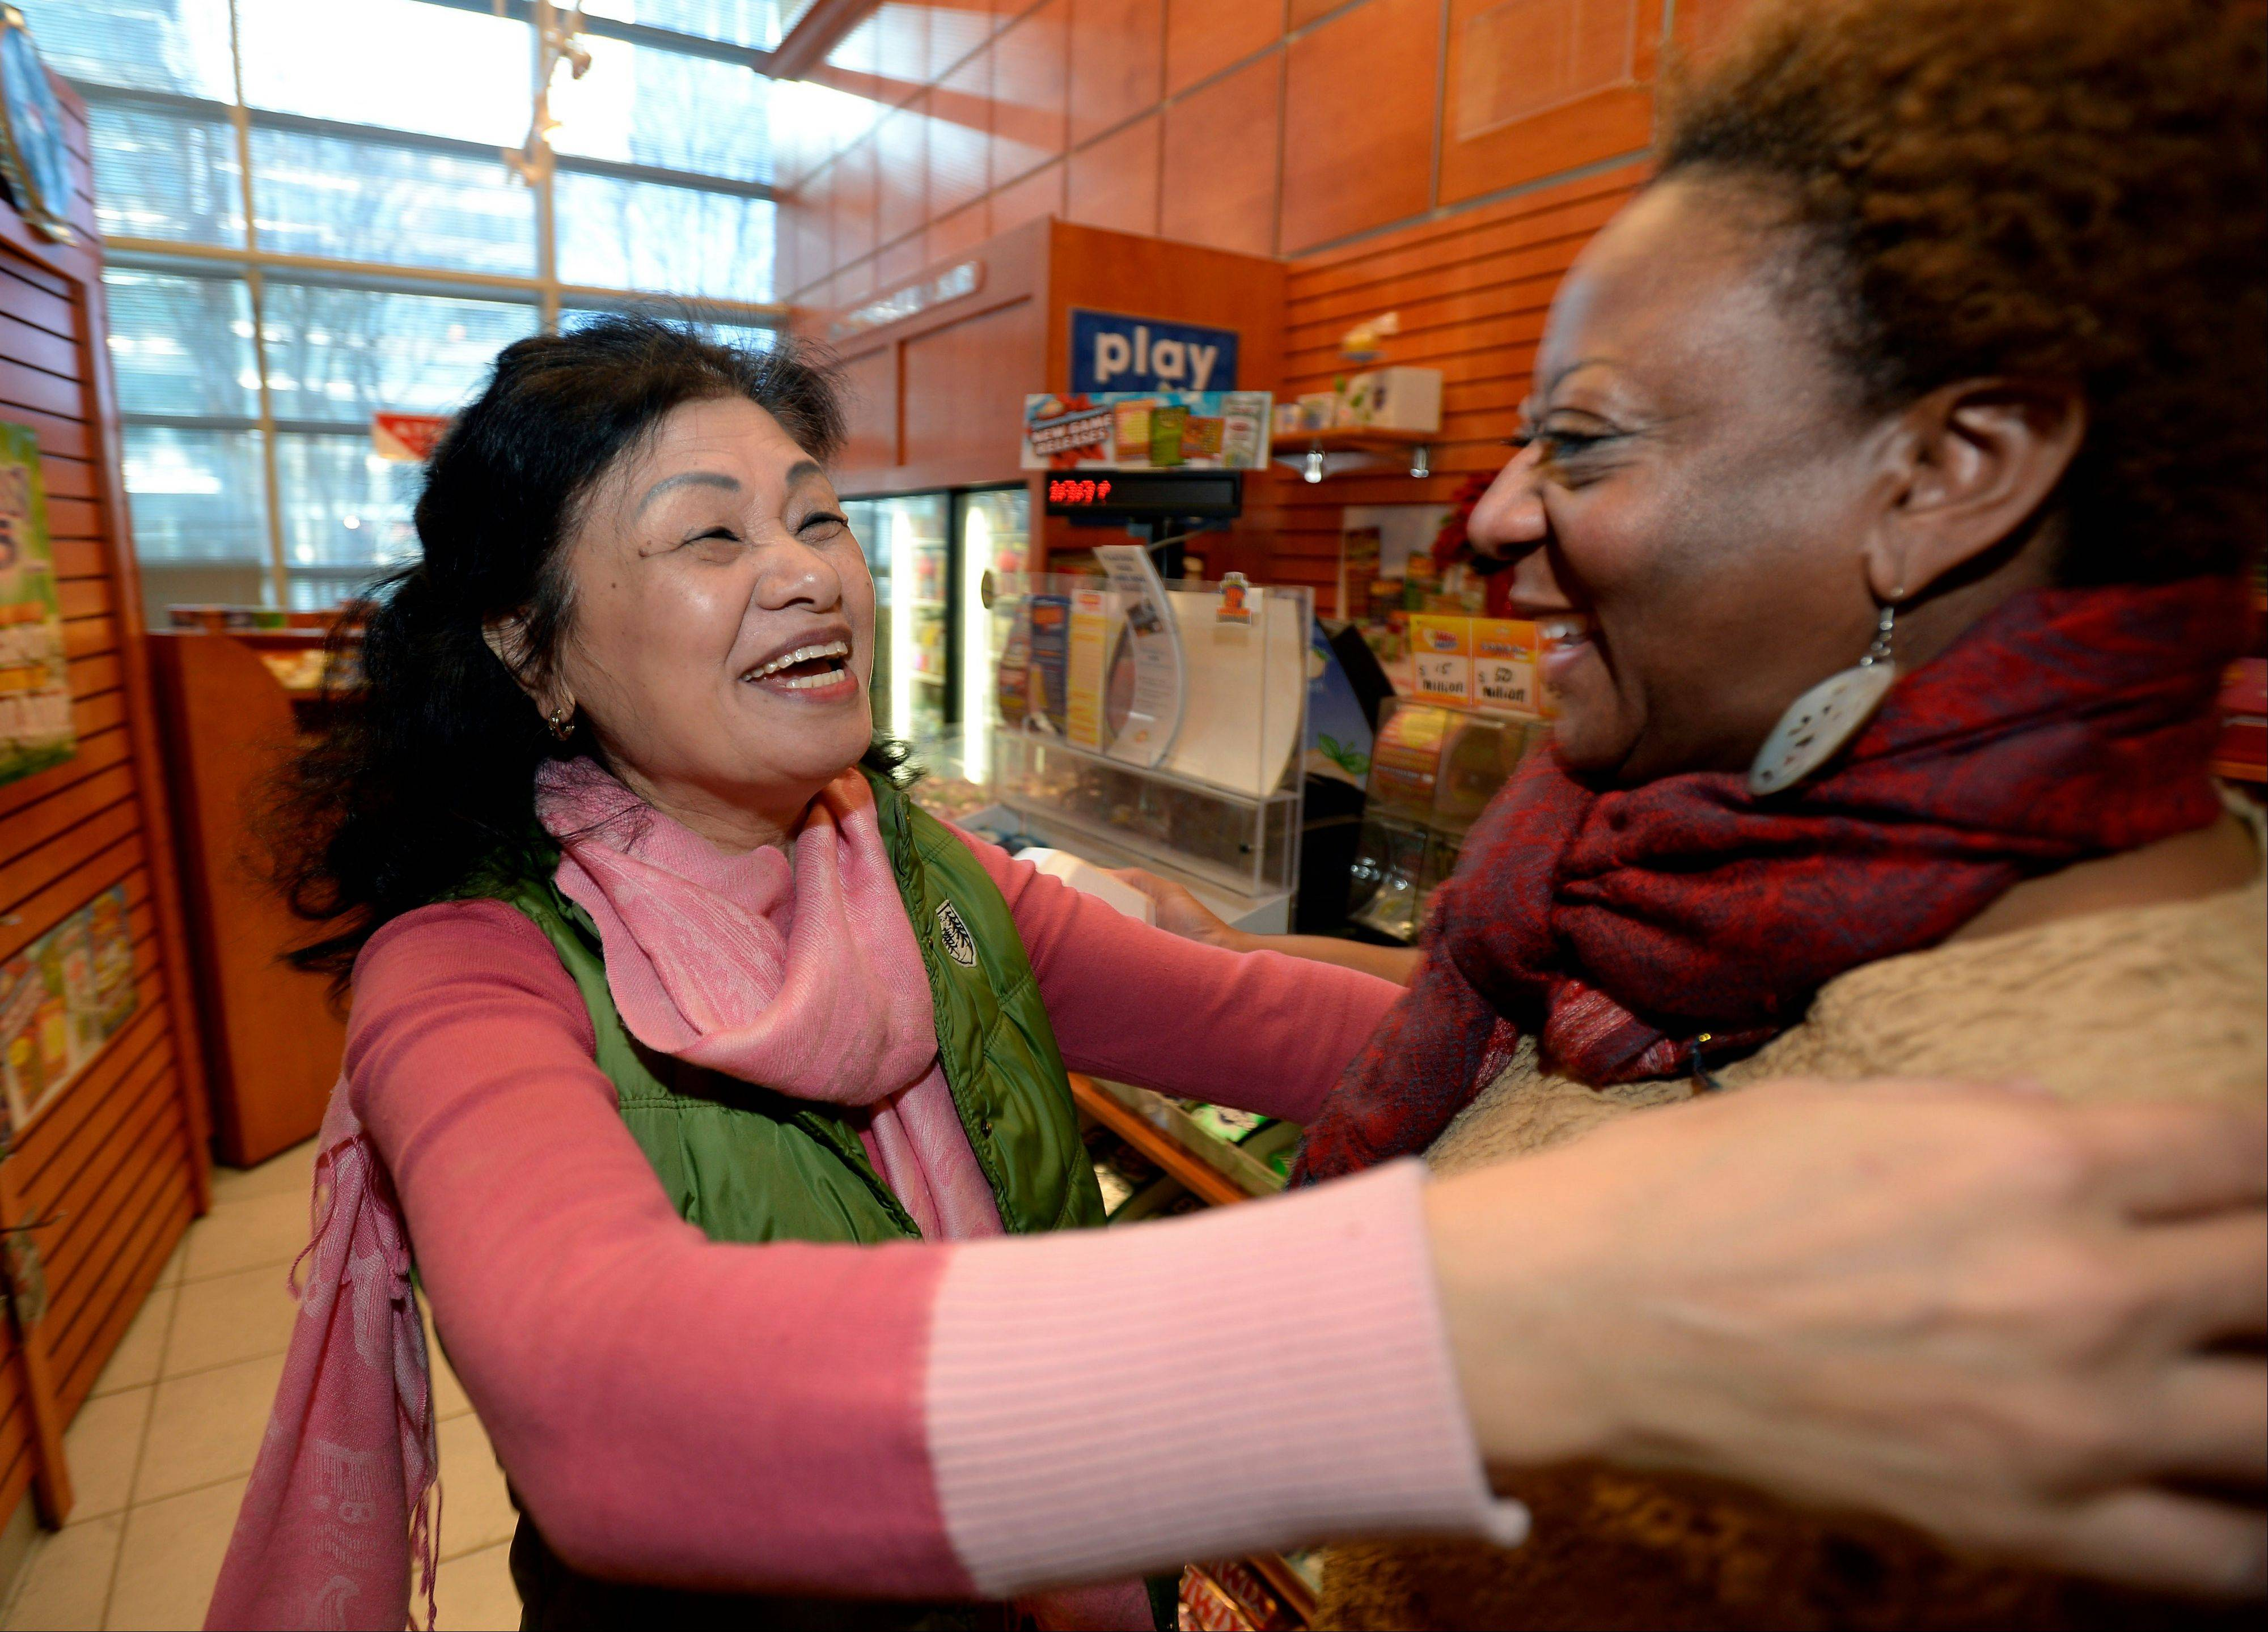 Owner Young Soolee, left, is congratulated by regular customer Dawn Palmerat her small Alliance Center office bulding newsstand on Wednesday in Atlanta after lottery officials said one of two winning Mega Millions lottery tickets were purchased from her store in Tuesday�s $636 million drawing. The store owner said she sold 1,300 lottery tickets on Tuesday rather than the normal sales of about 100 tickets.